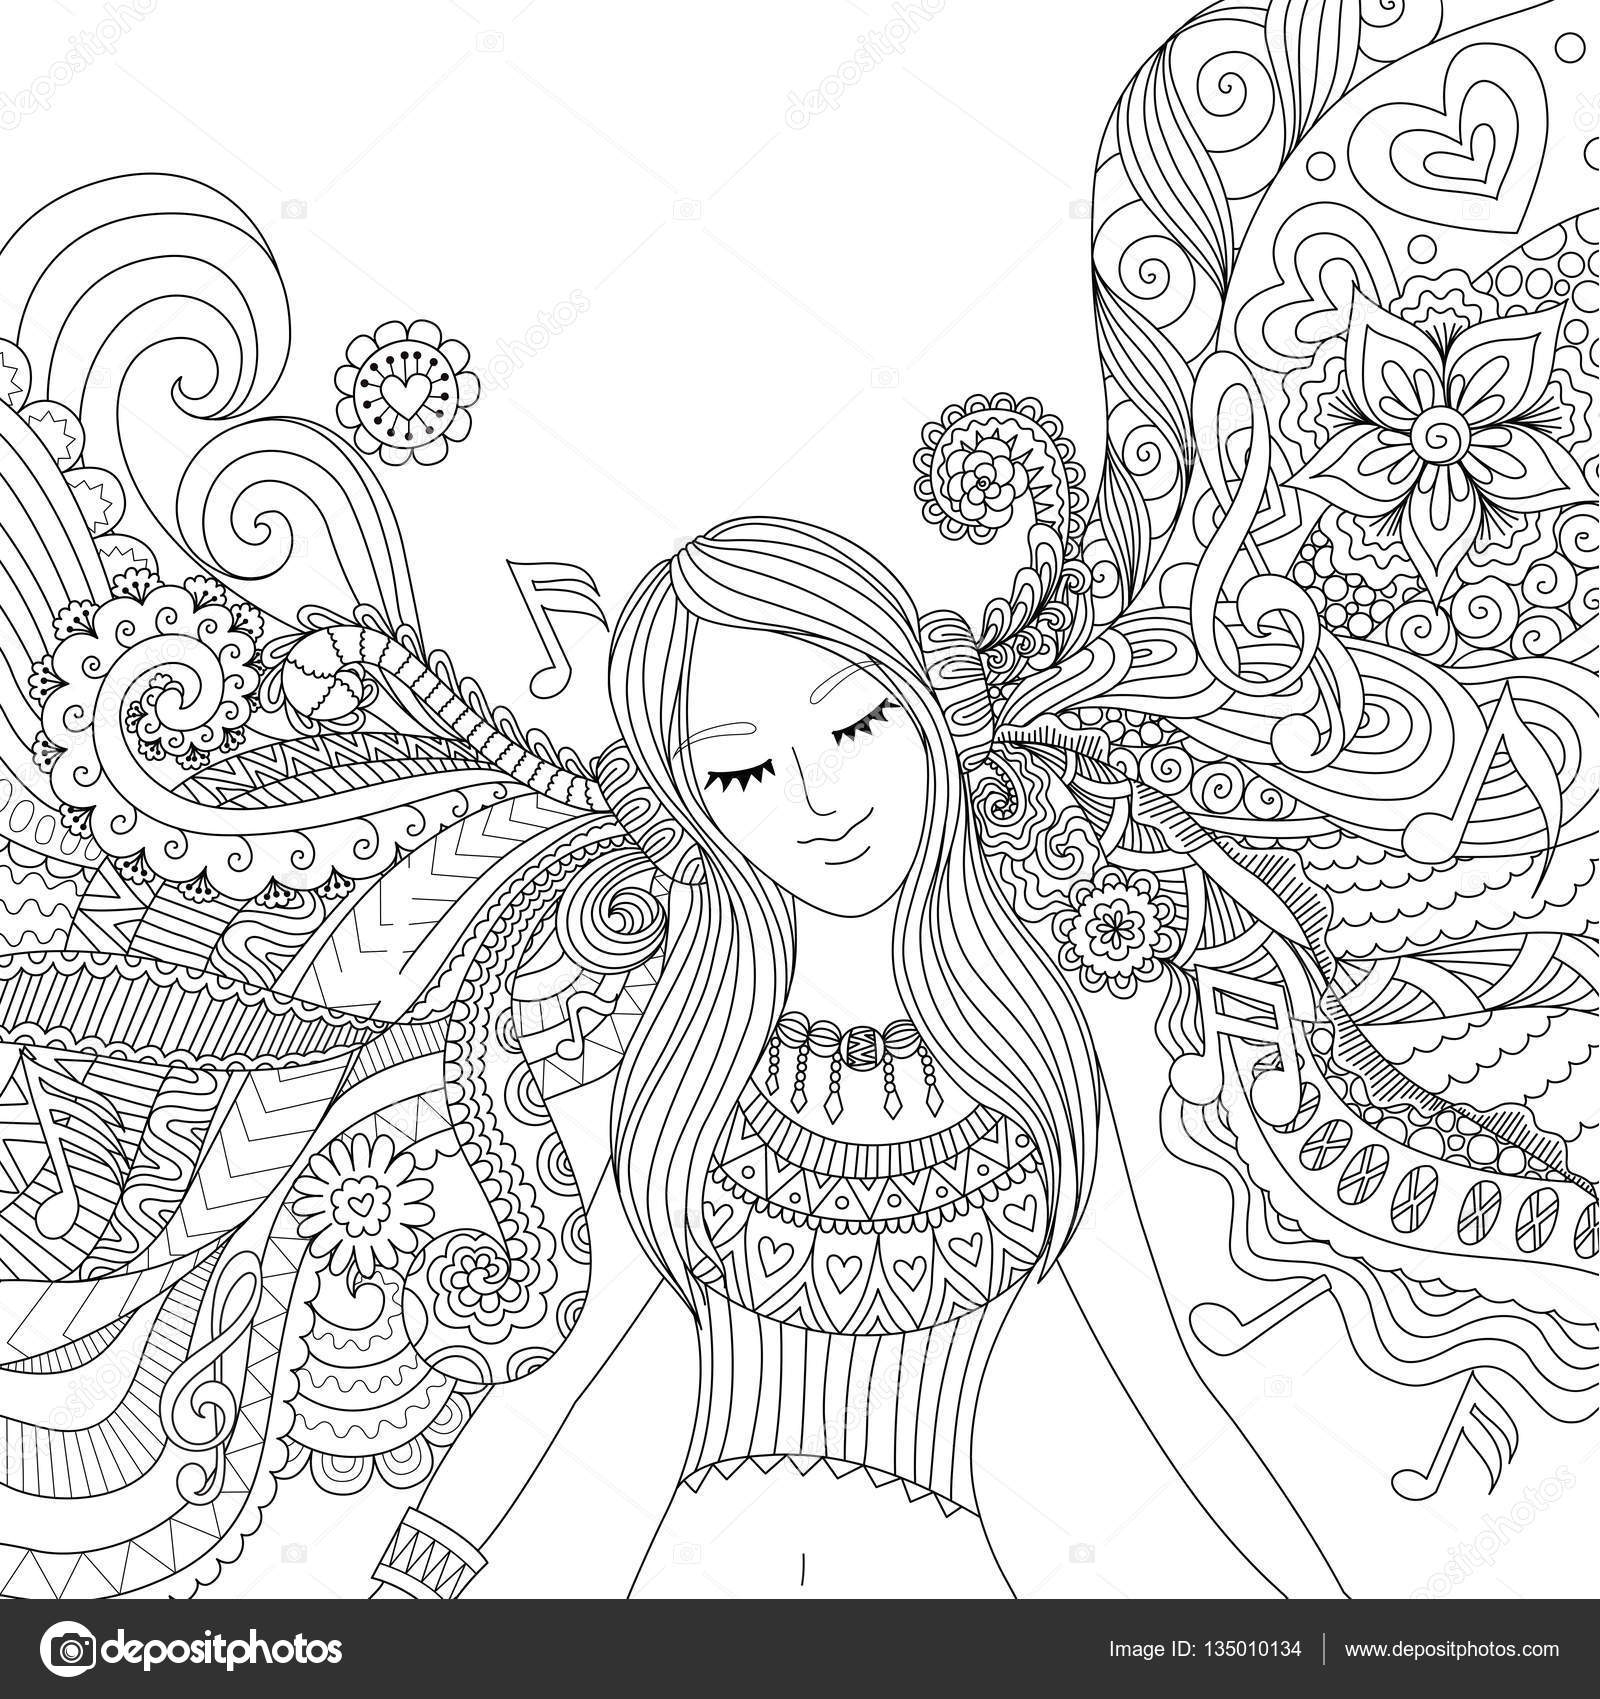 Girl listen to music adult coloring book — Stock Vector ...